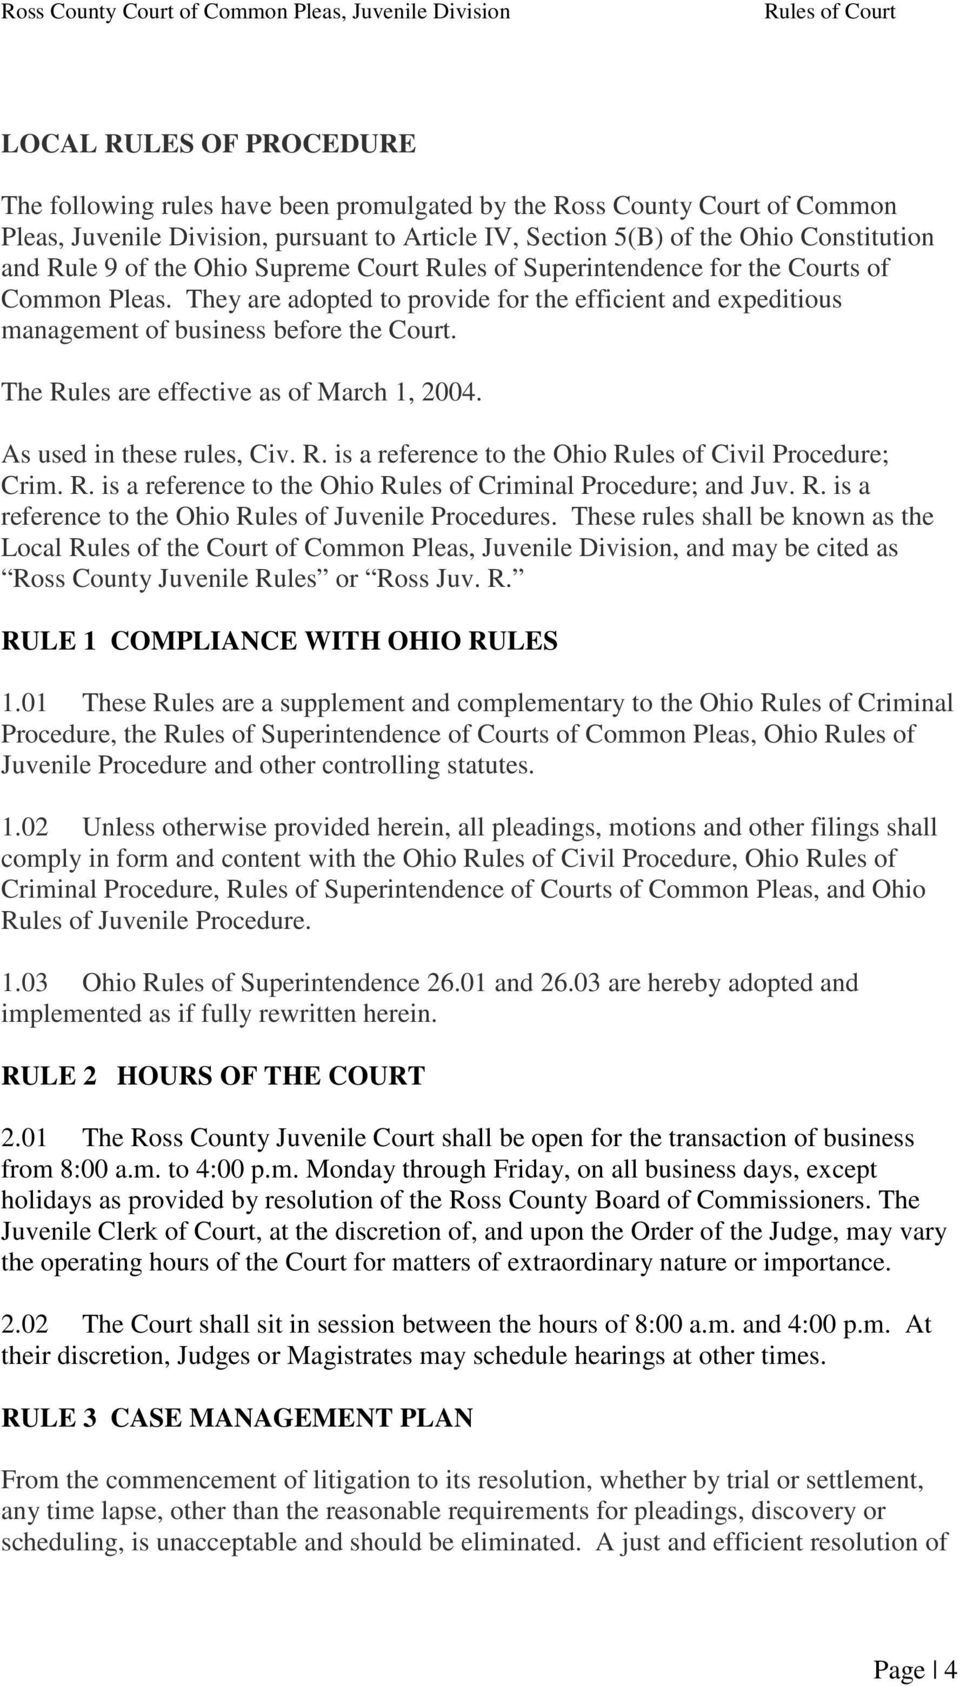 The Rules are effective as of March 1, 2004. As used in these rules, Civ. R. is a reference to the Ohio Rules of Civil Procedure; Crim. R. is a reference to the Ohio Rules of Criminal Procedure; and Juv.